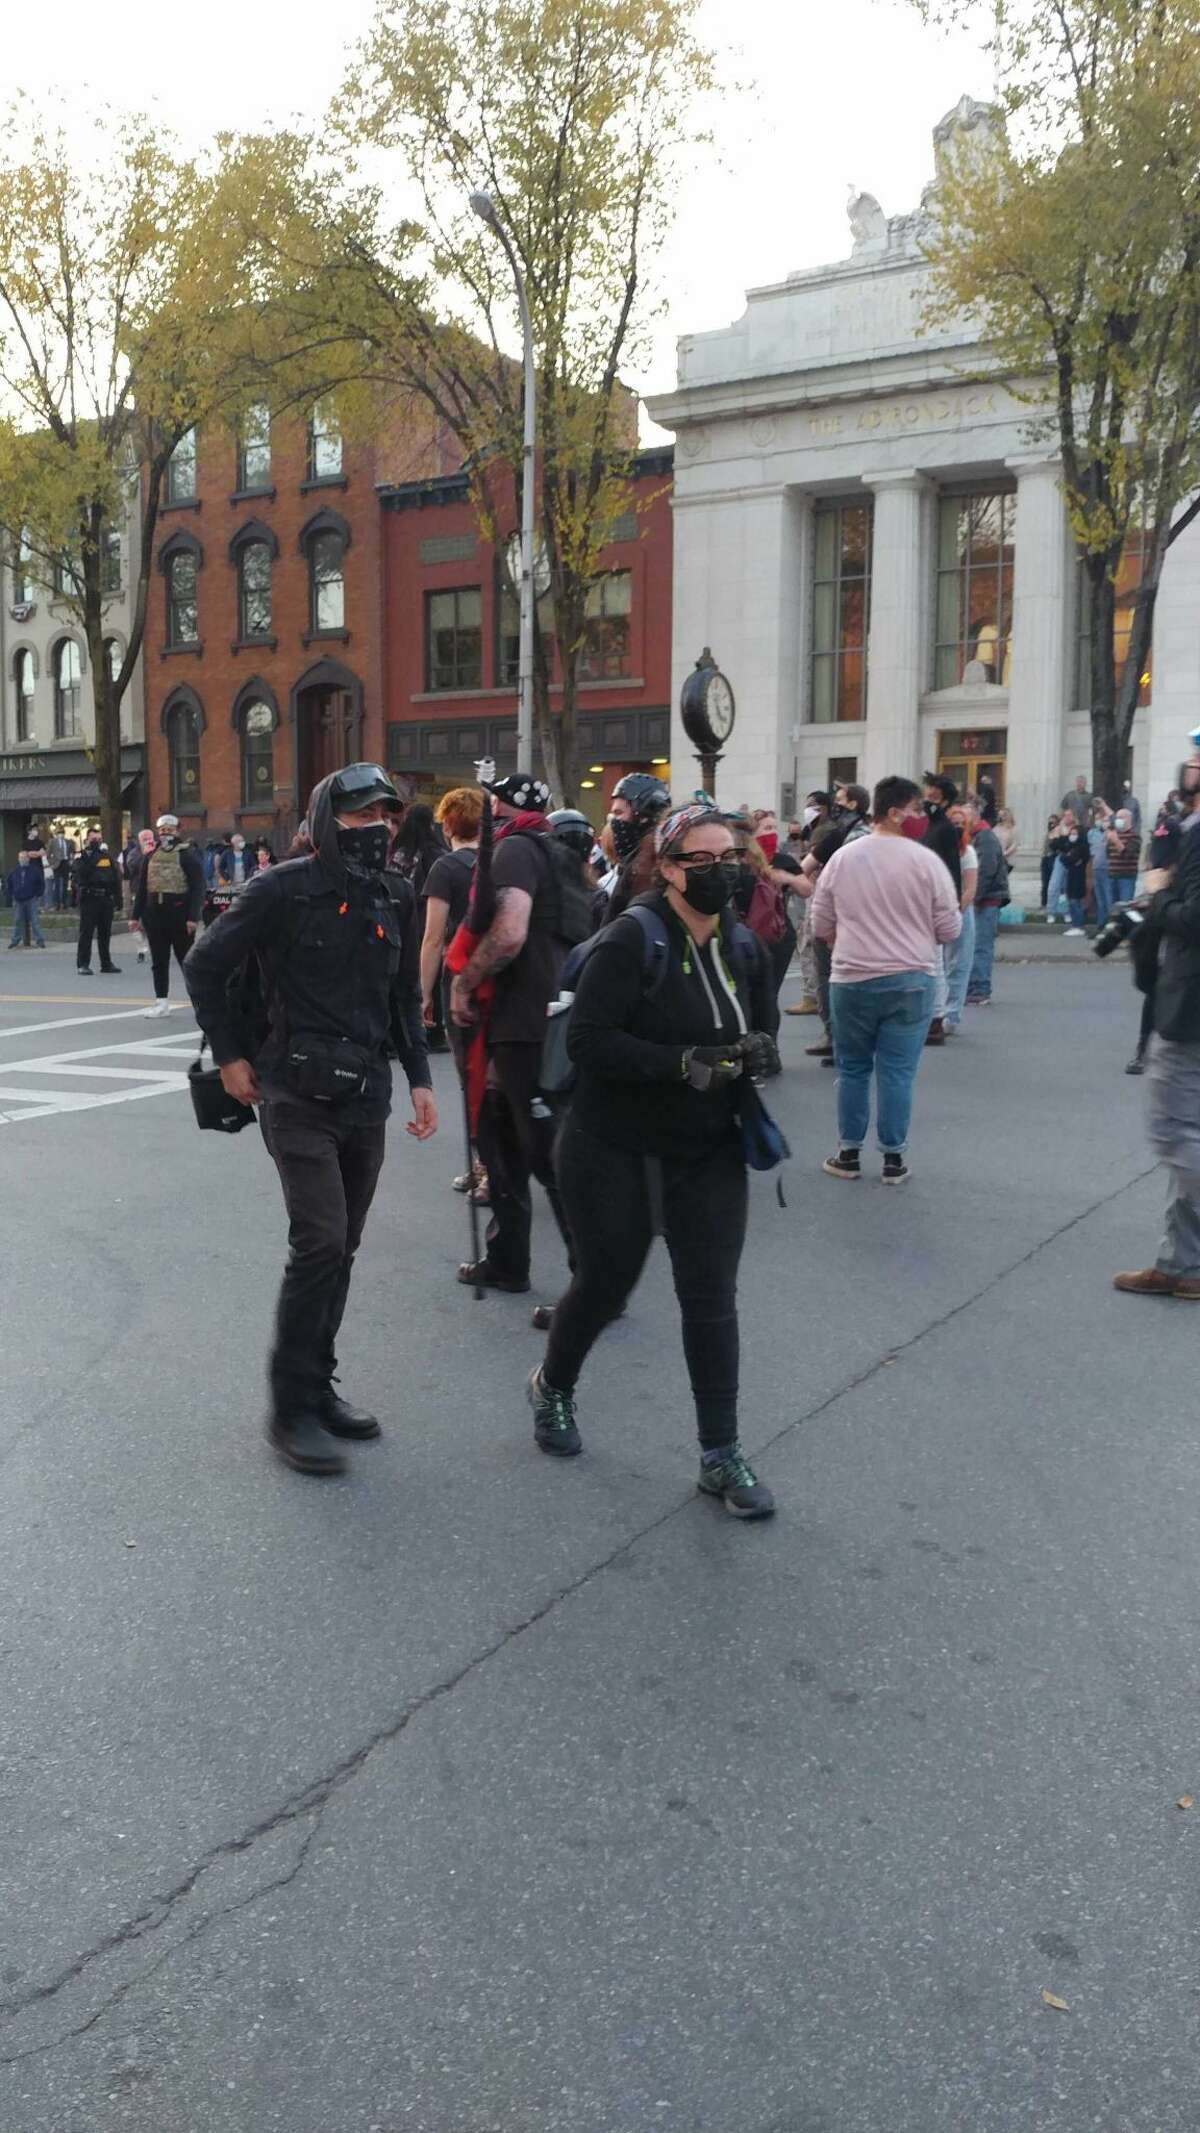 Hundreds joined in a Black Lives Matter rally Saturday afternoon in Saratoga Springs, with the crowds blocking traffic on main streets.